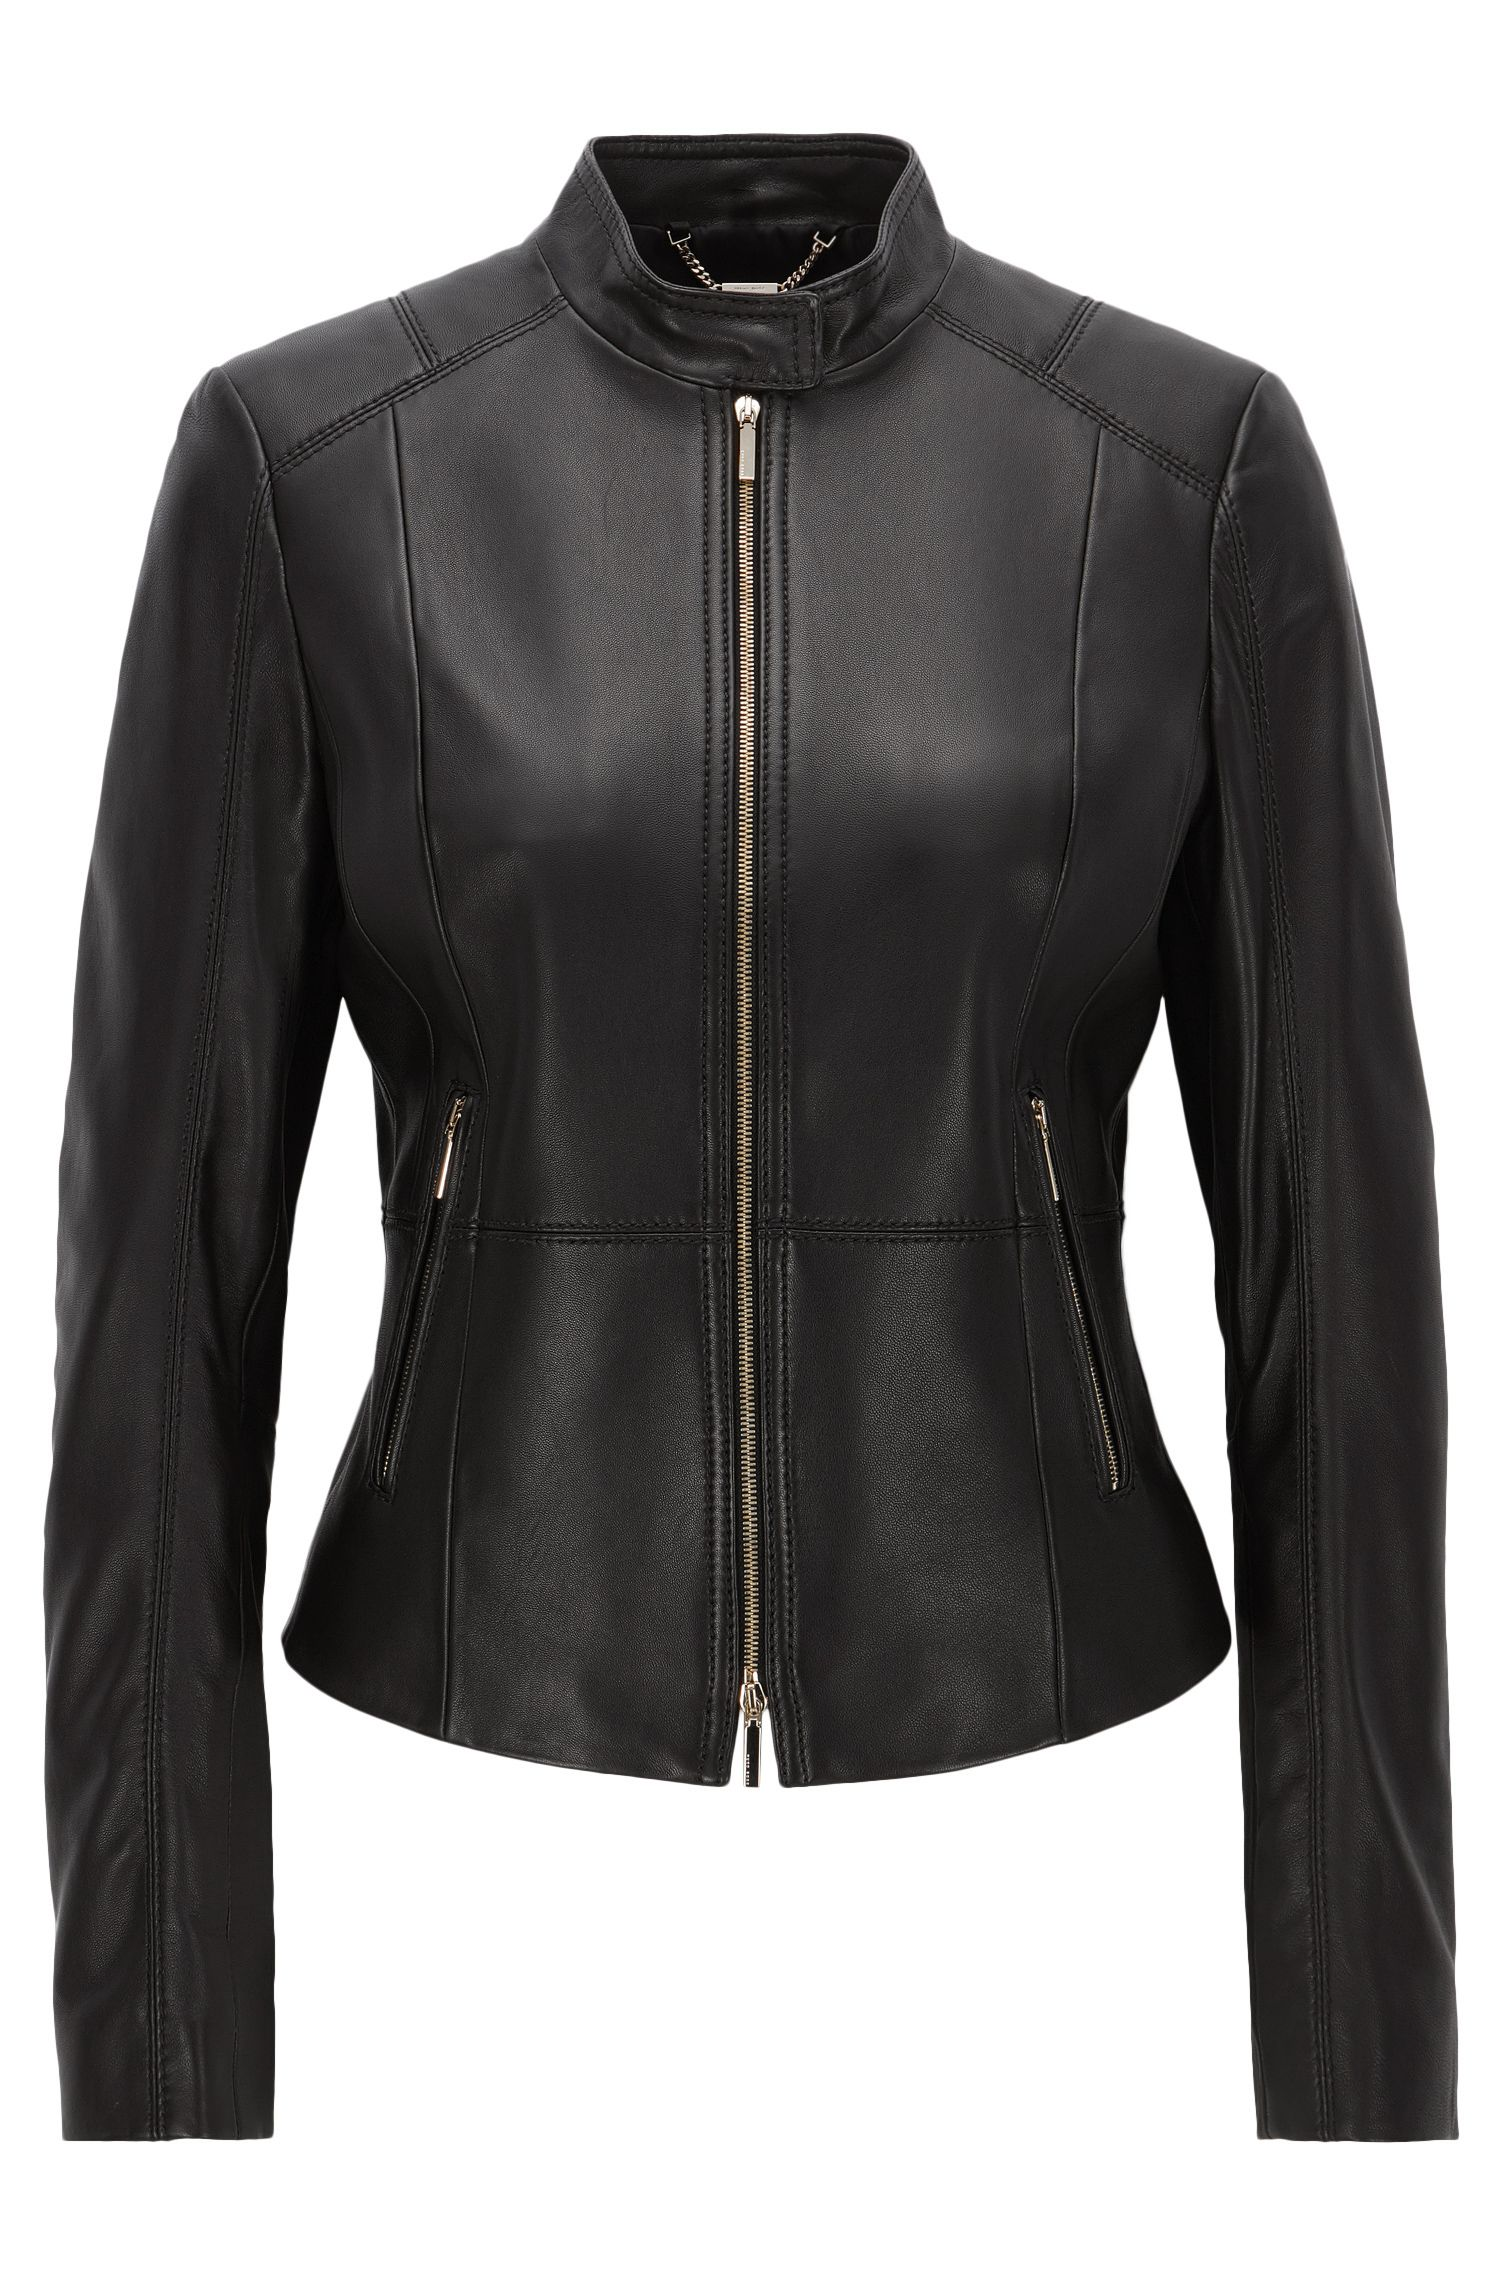 Lambskin Leather Jacket | Sammonaie